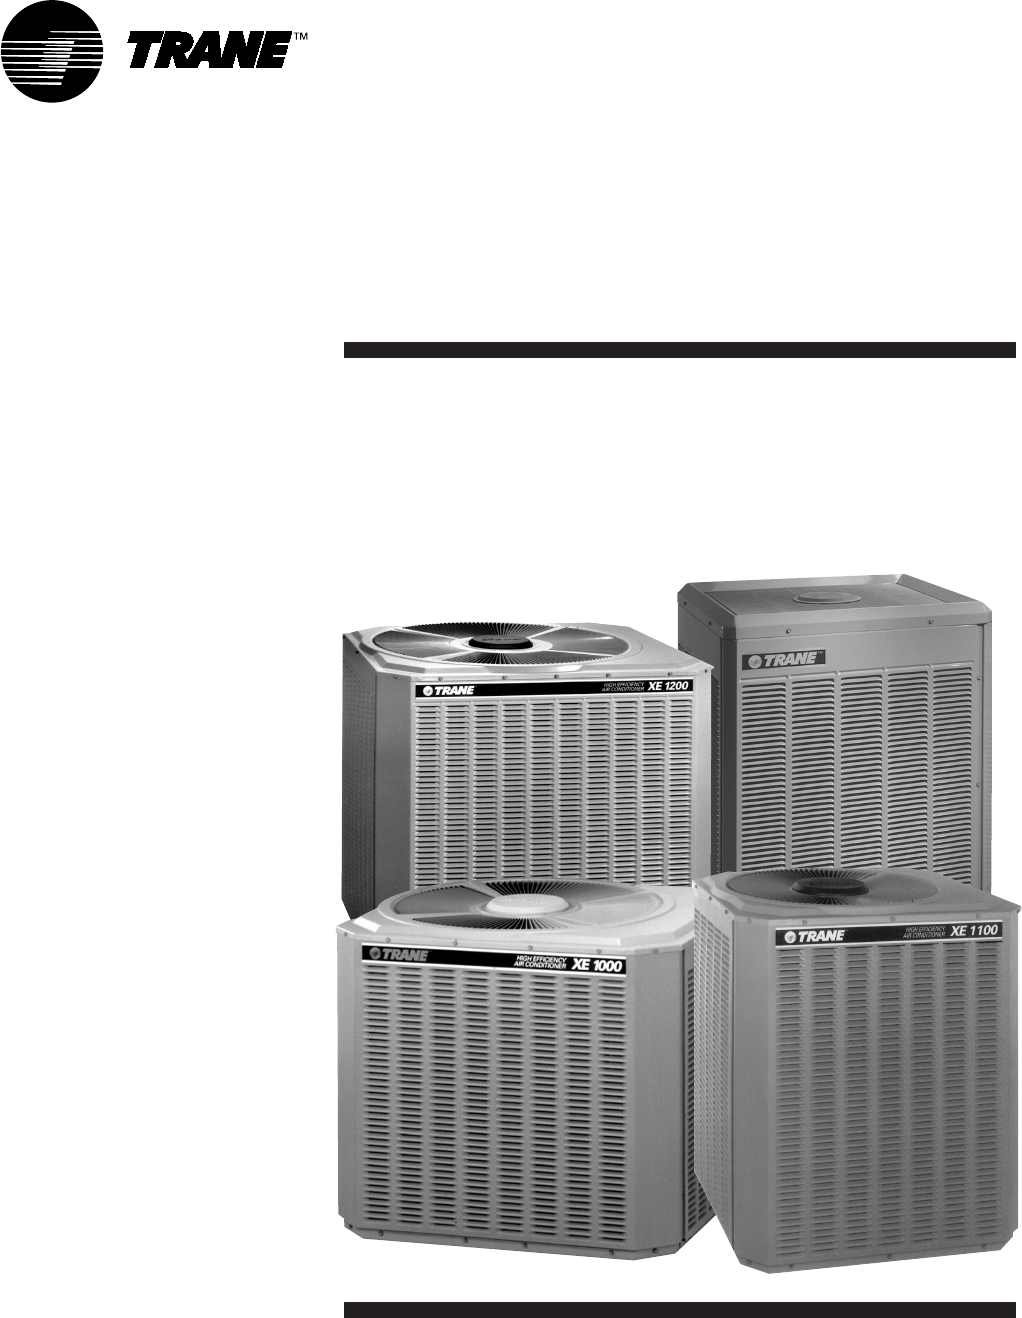 trane air conditioner 22 5150 03 497 user guide manualsonline com rh homeappliance manualsonline com Trane Air Conditioners Model Numbers trane central air conditioner owner's manual